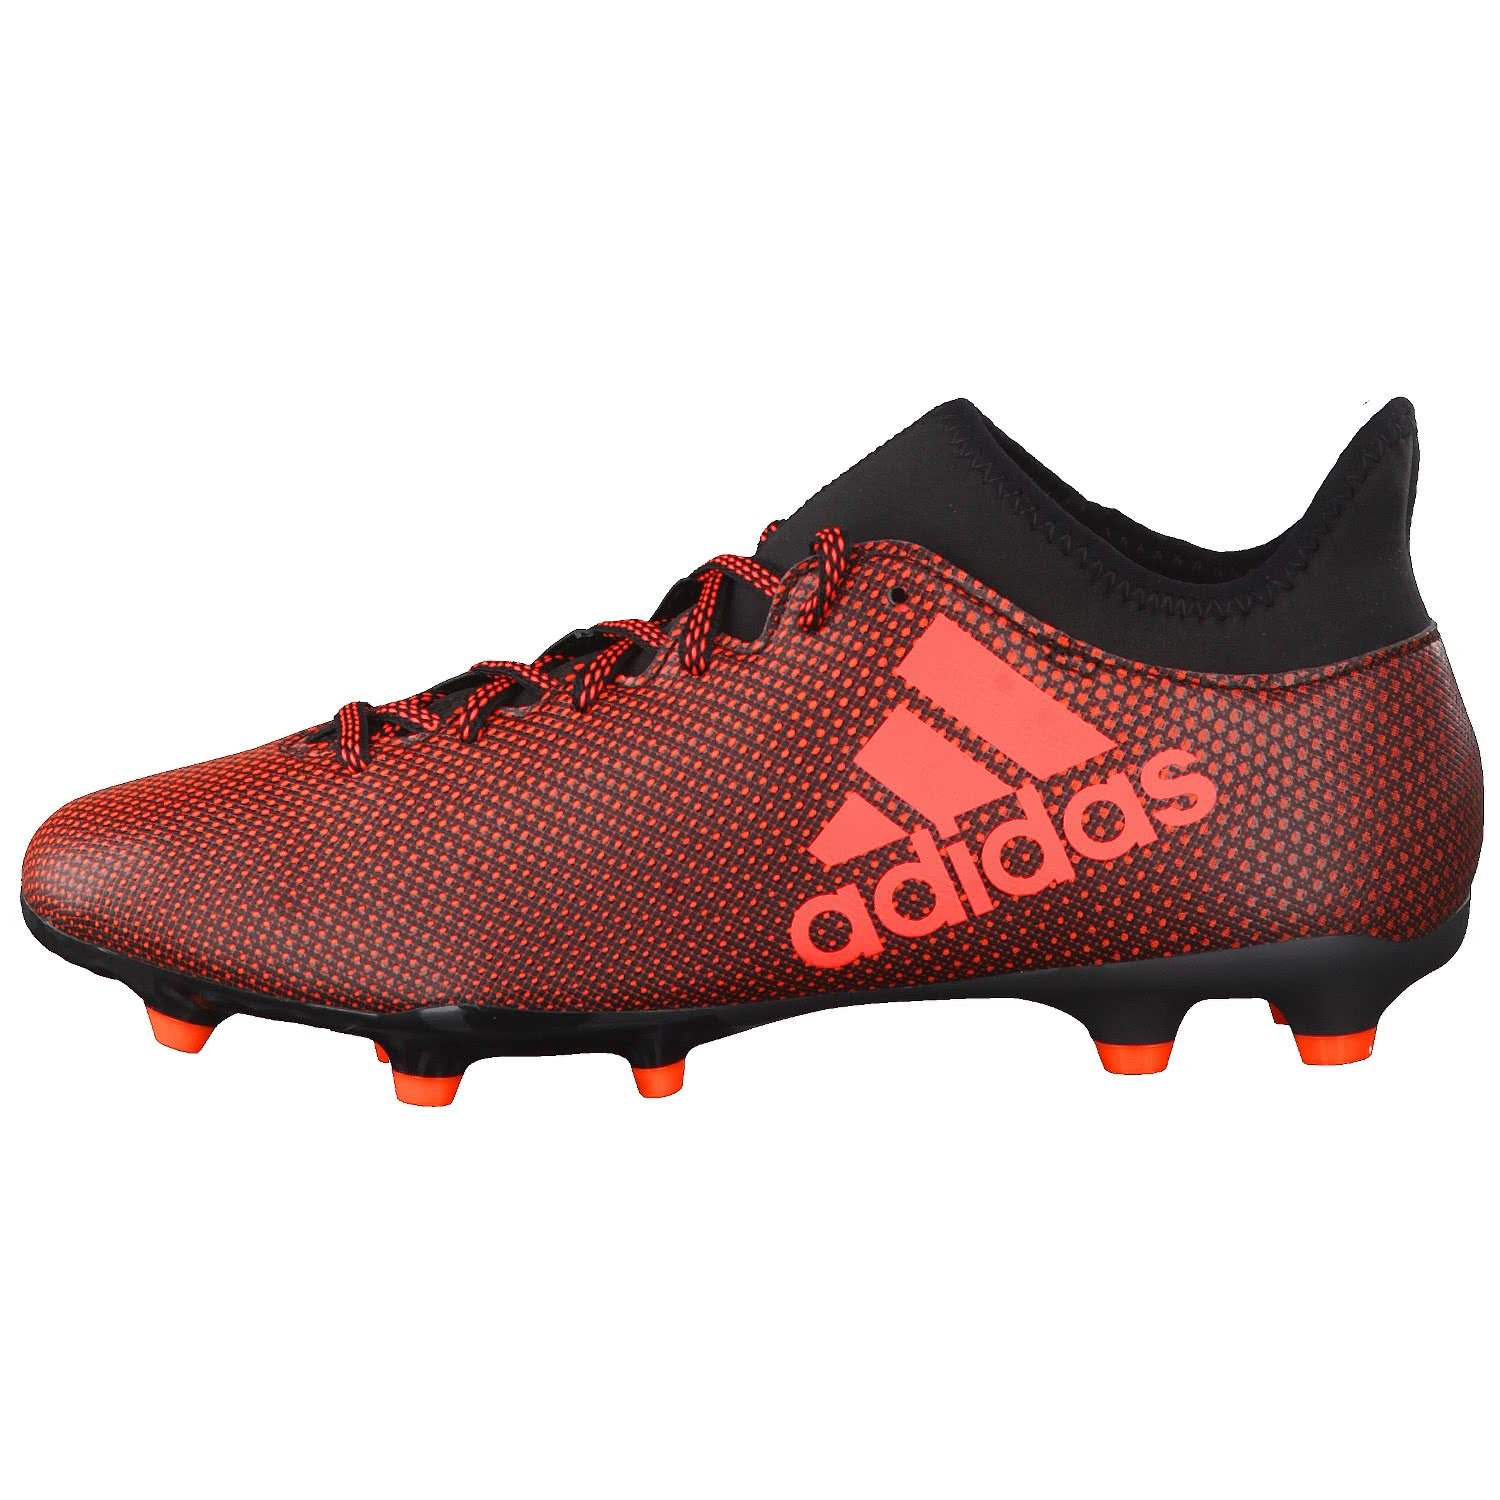 dd4df83df7e5 adidas Men s X 17.3 Fg Football Boots Black Size  13 UK  Amazon.co ...